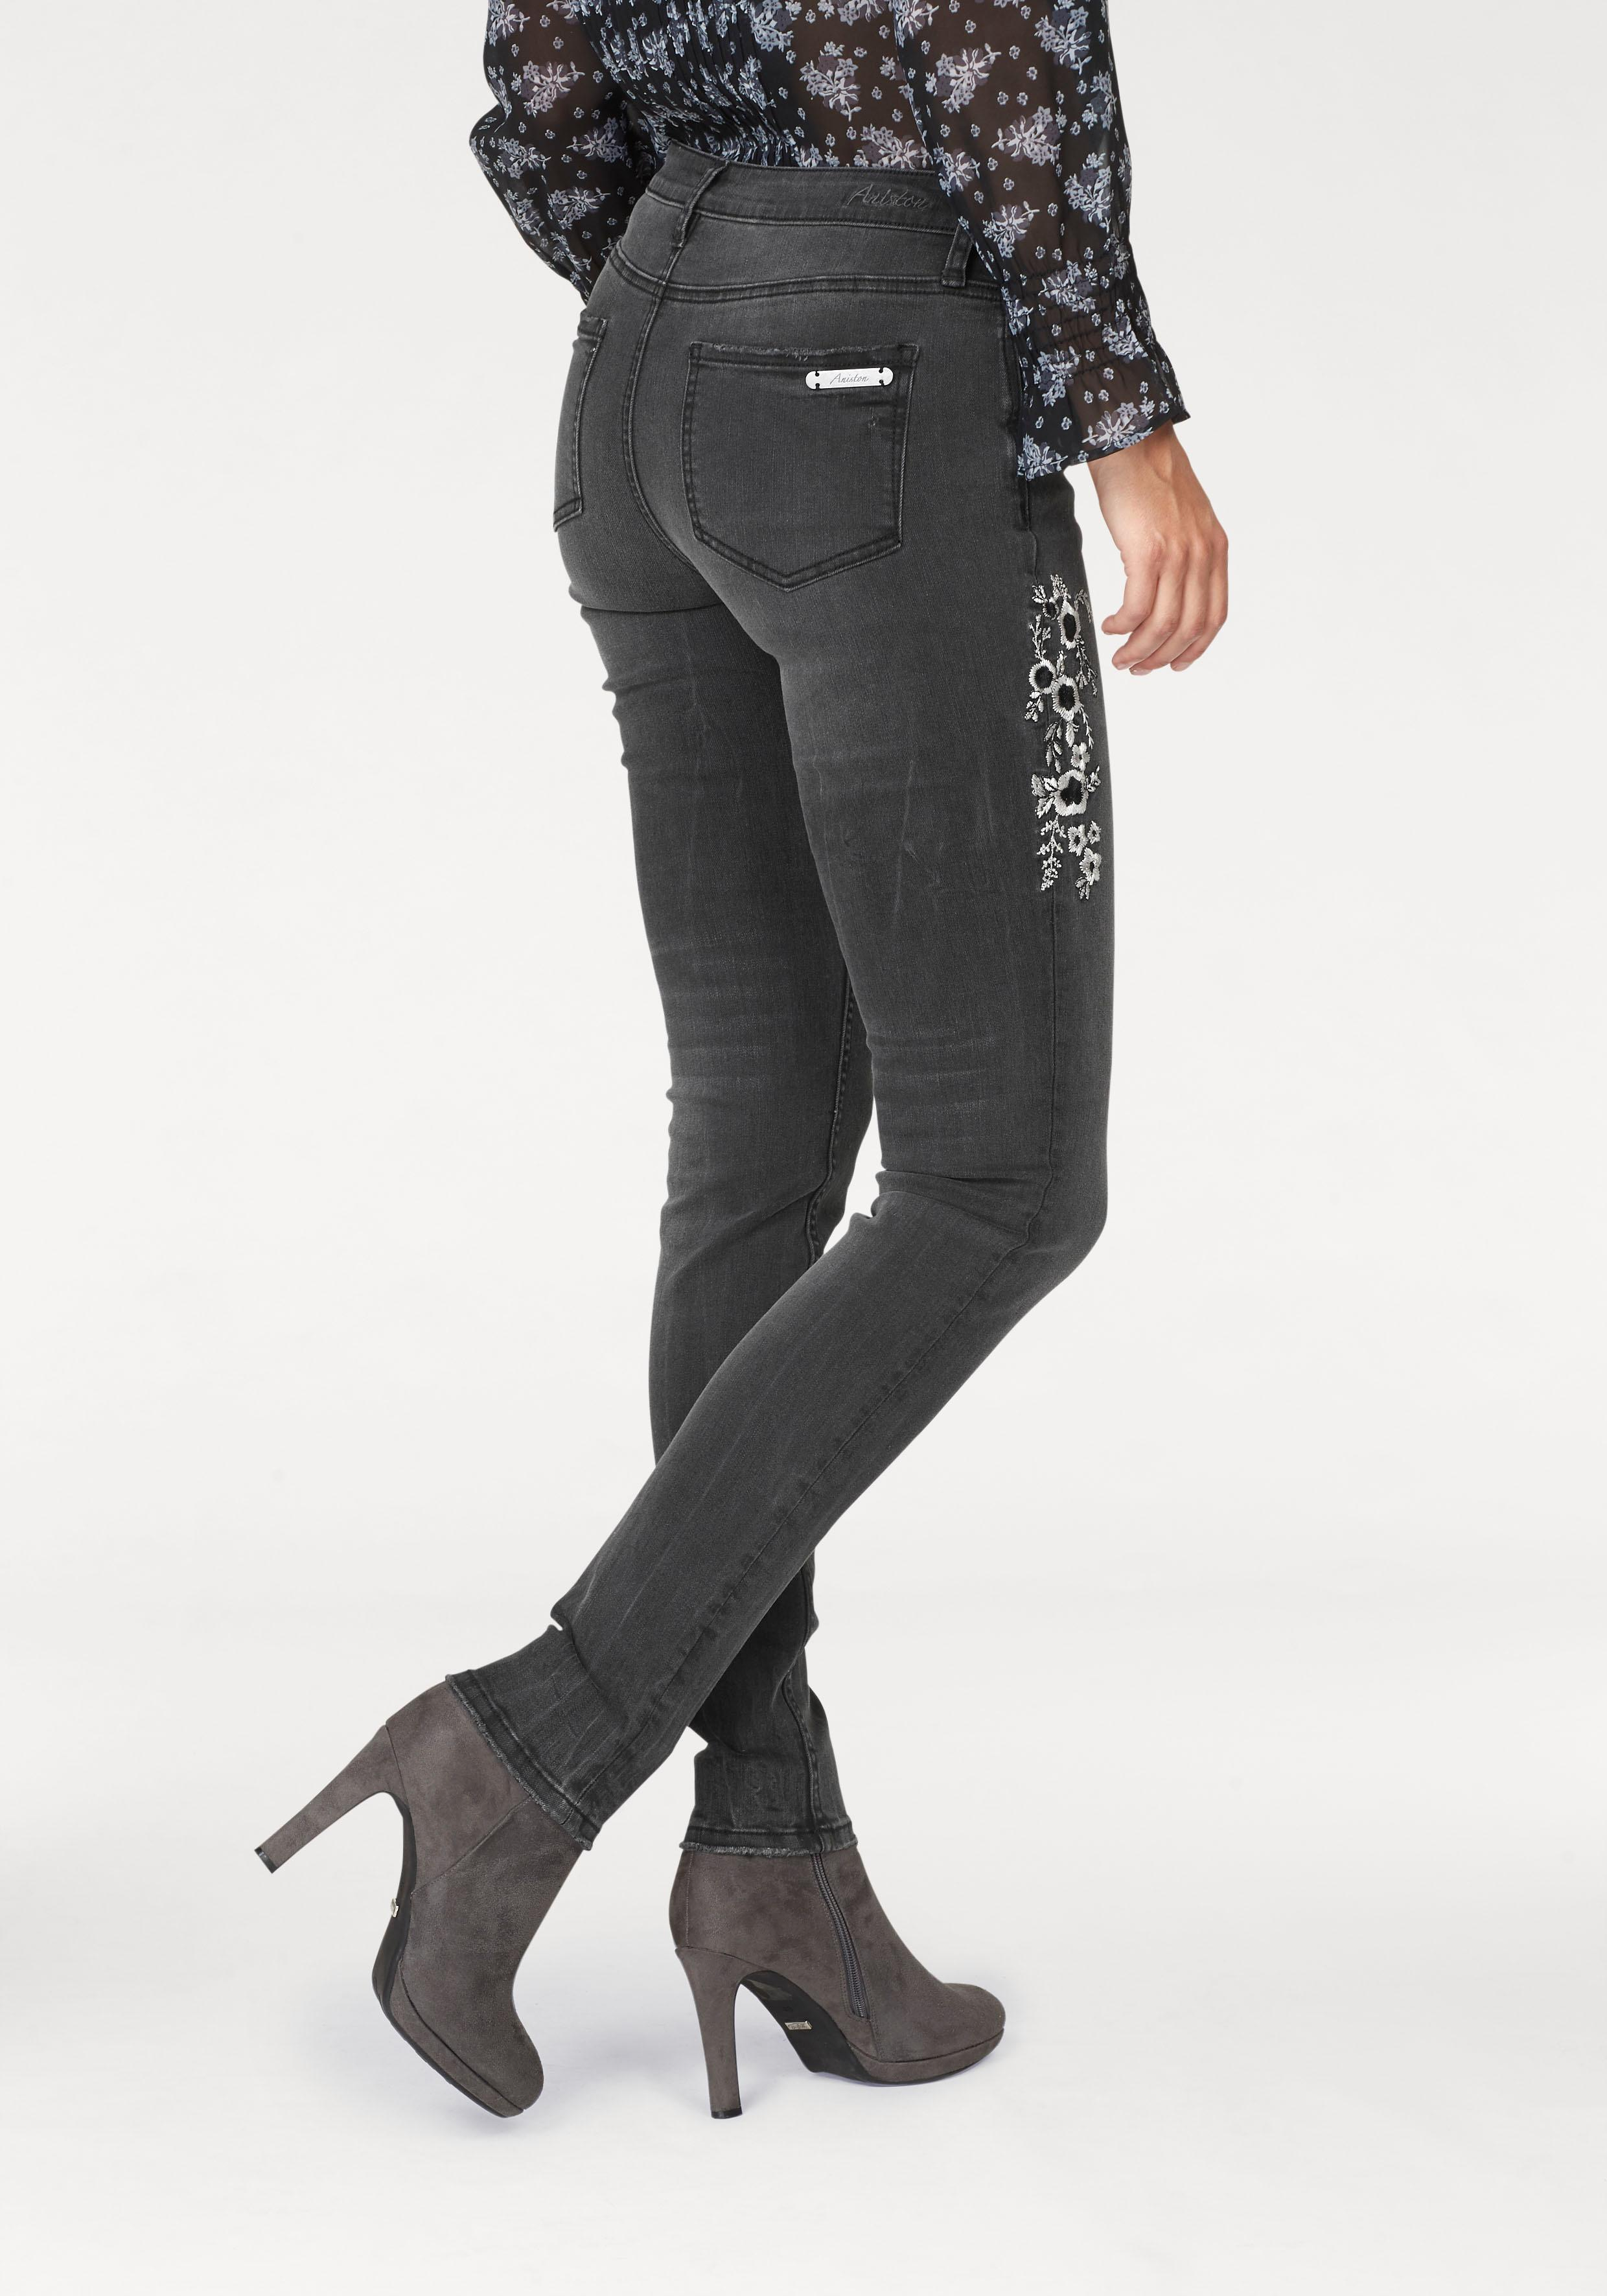 Image of Aniston by BAUR Skinny-fit-Jeans